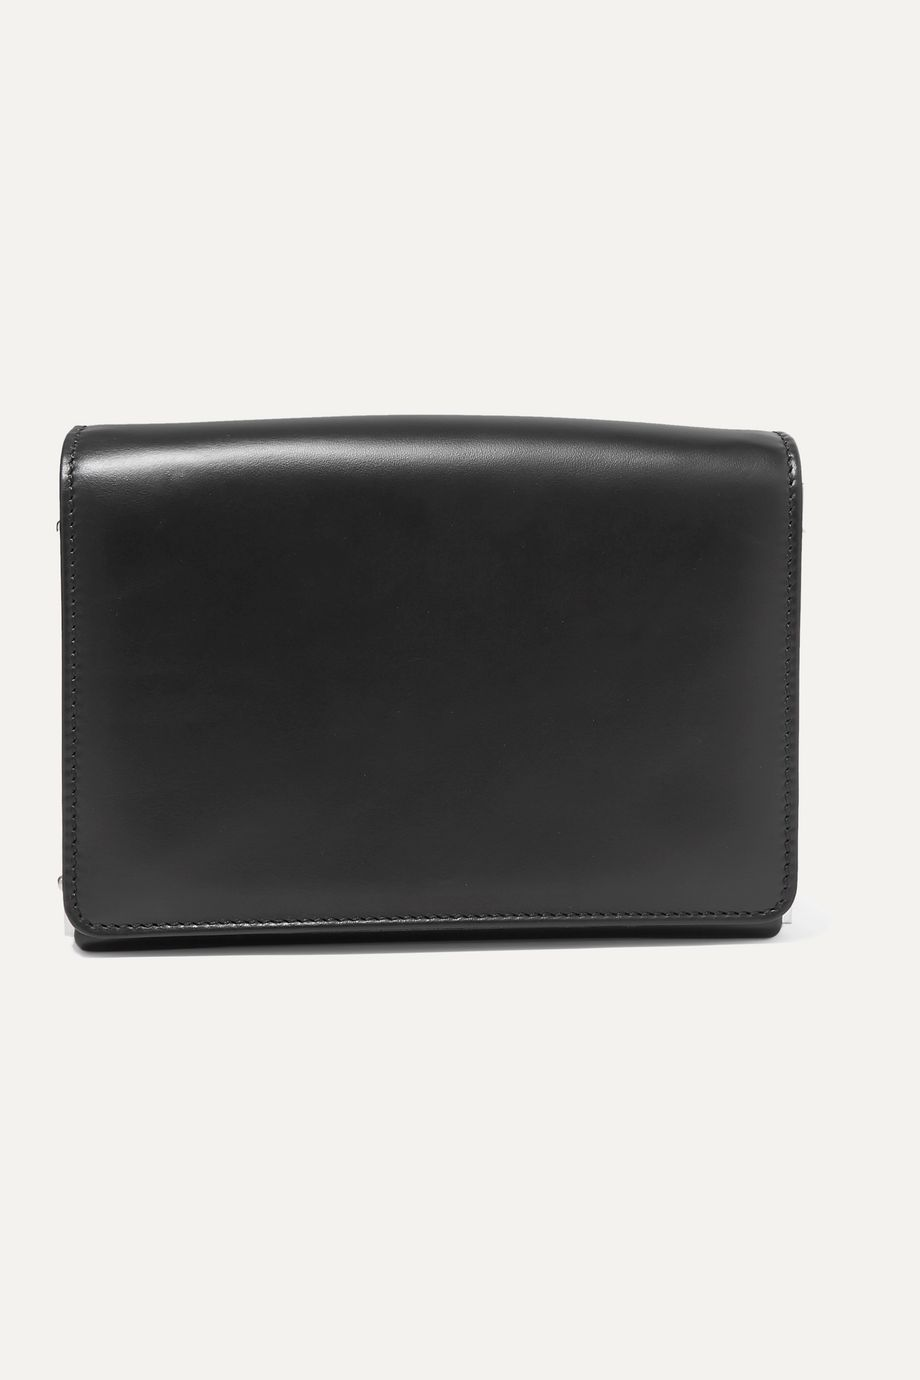 Serapian Gemma leather clutch